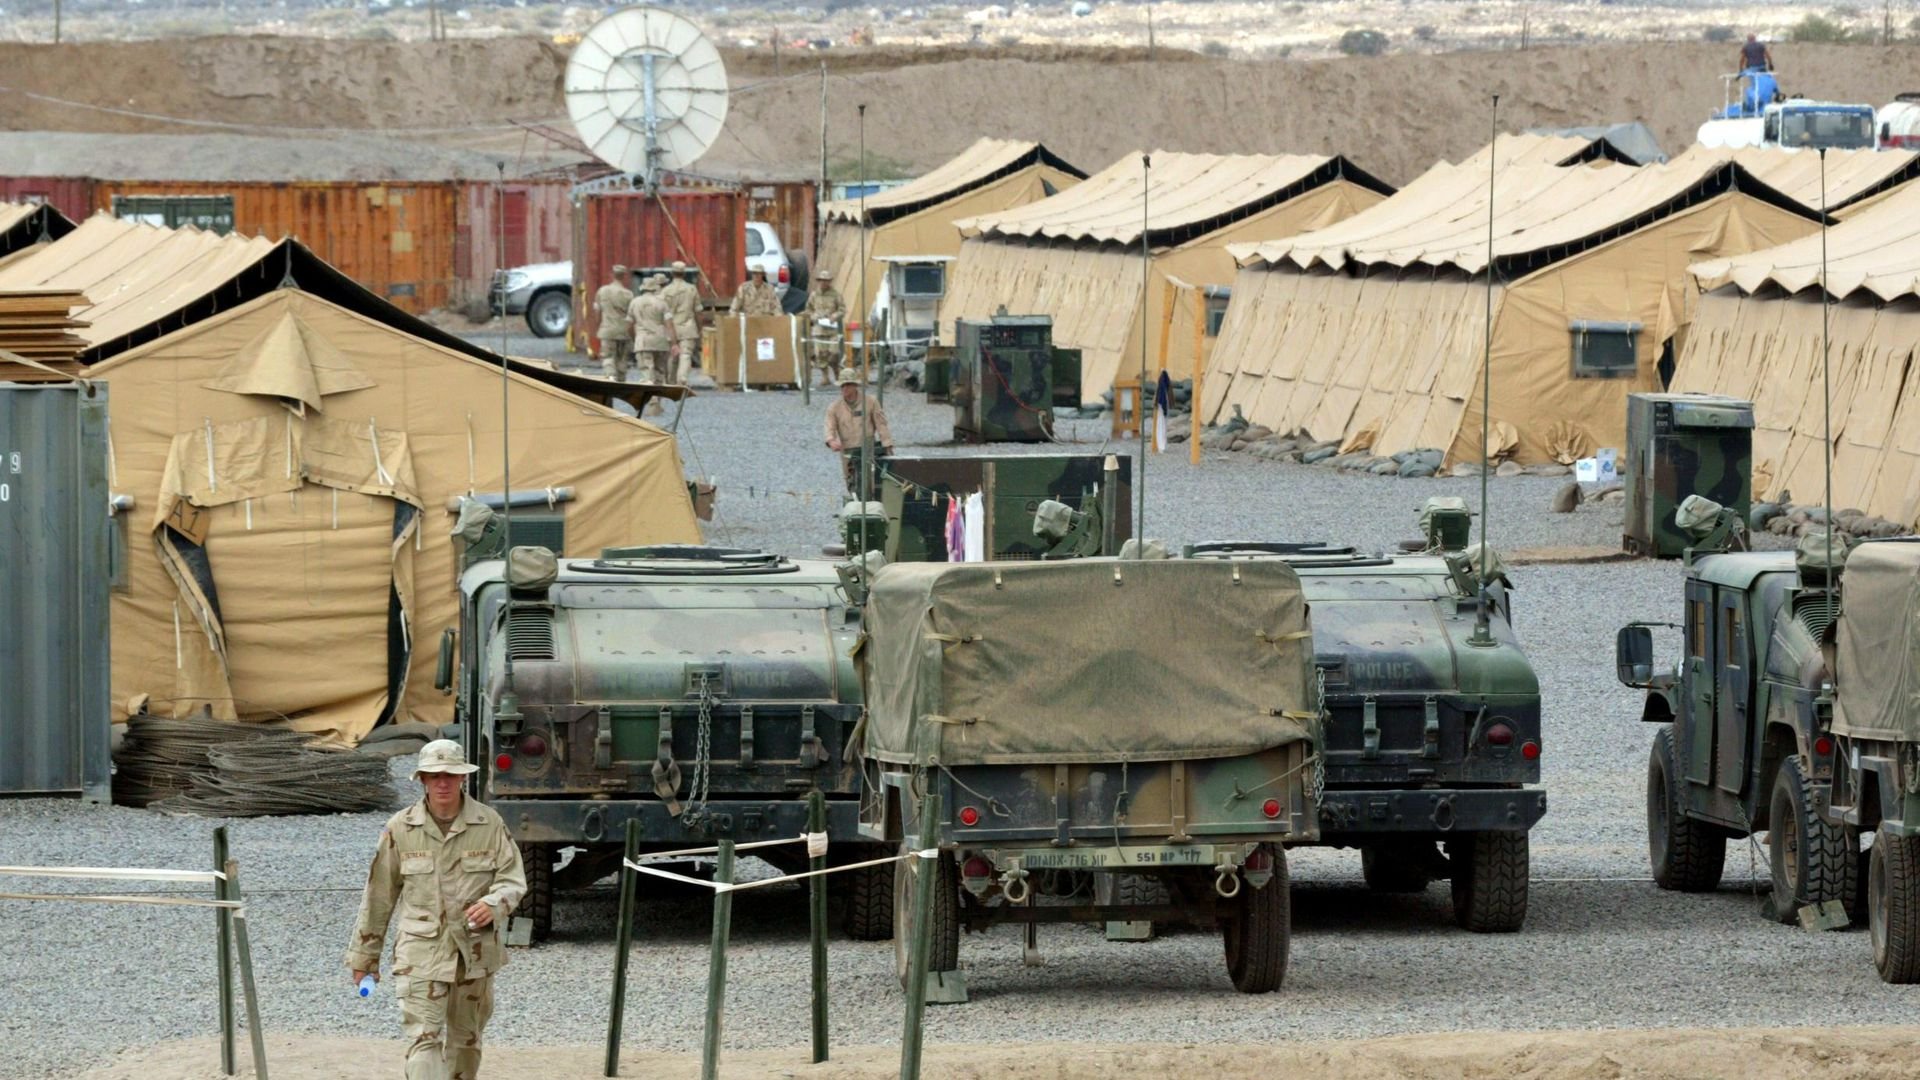 US base in Djibouti